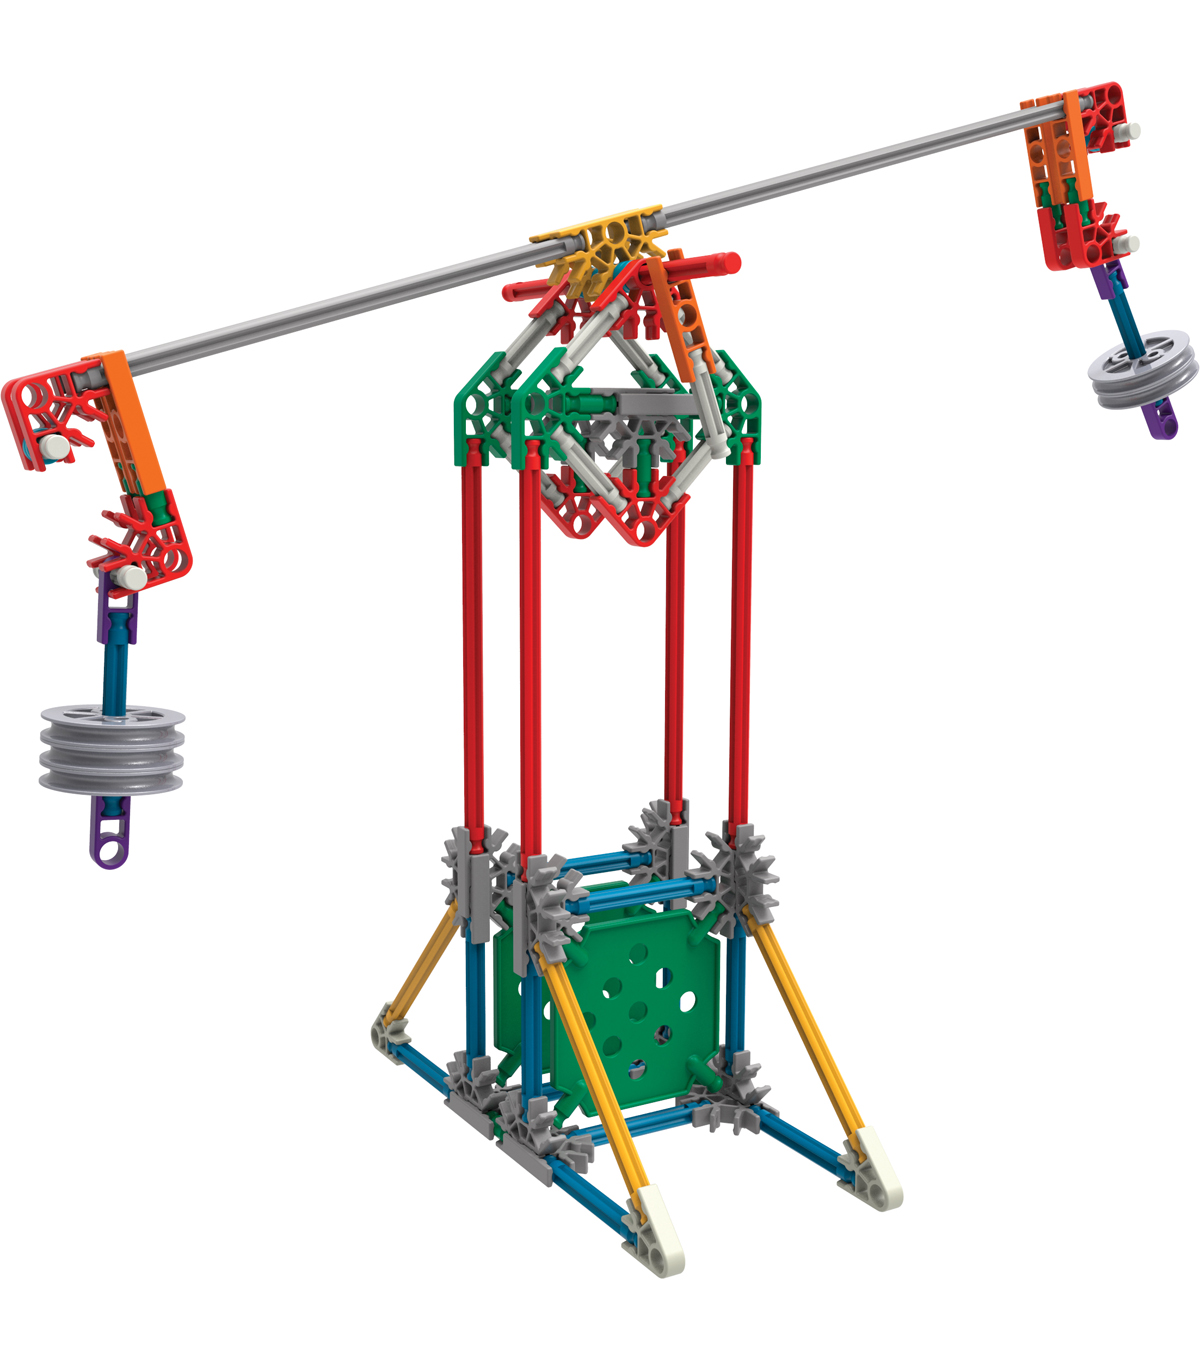 Knex Stem Explorations Levers & Pulley